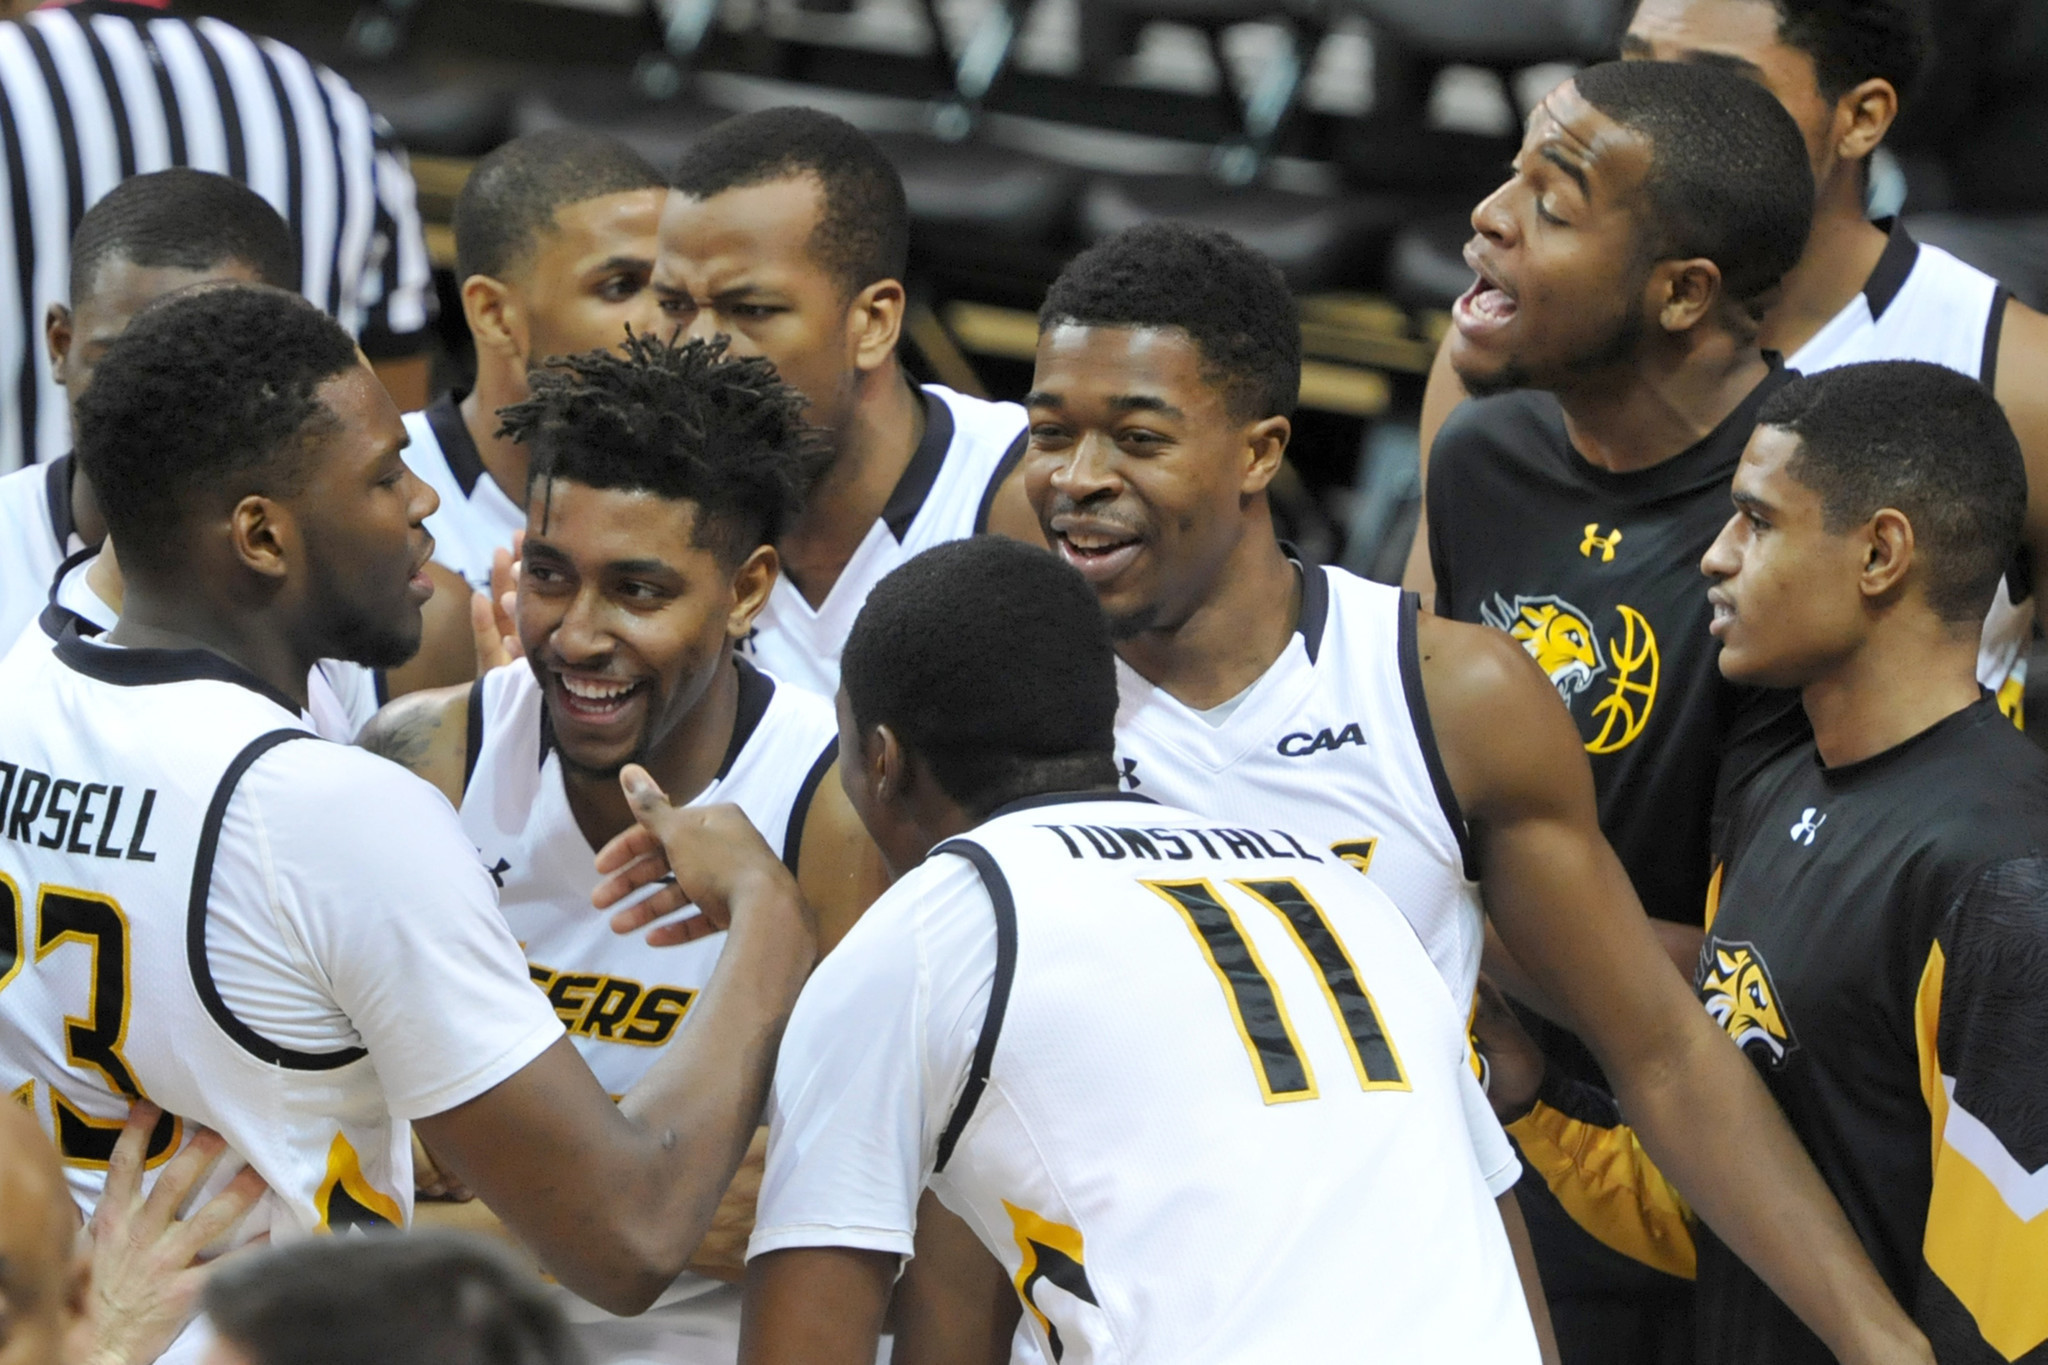 Towson surges back into CAA race with fifth straight win ...